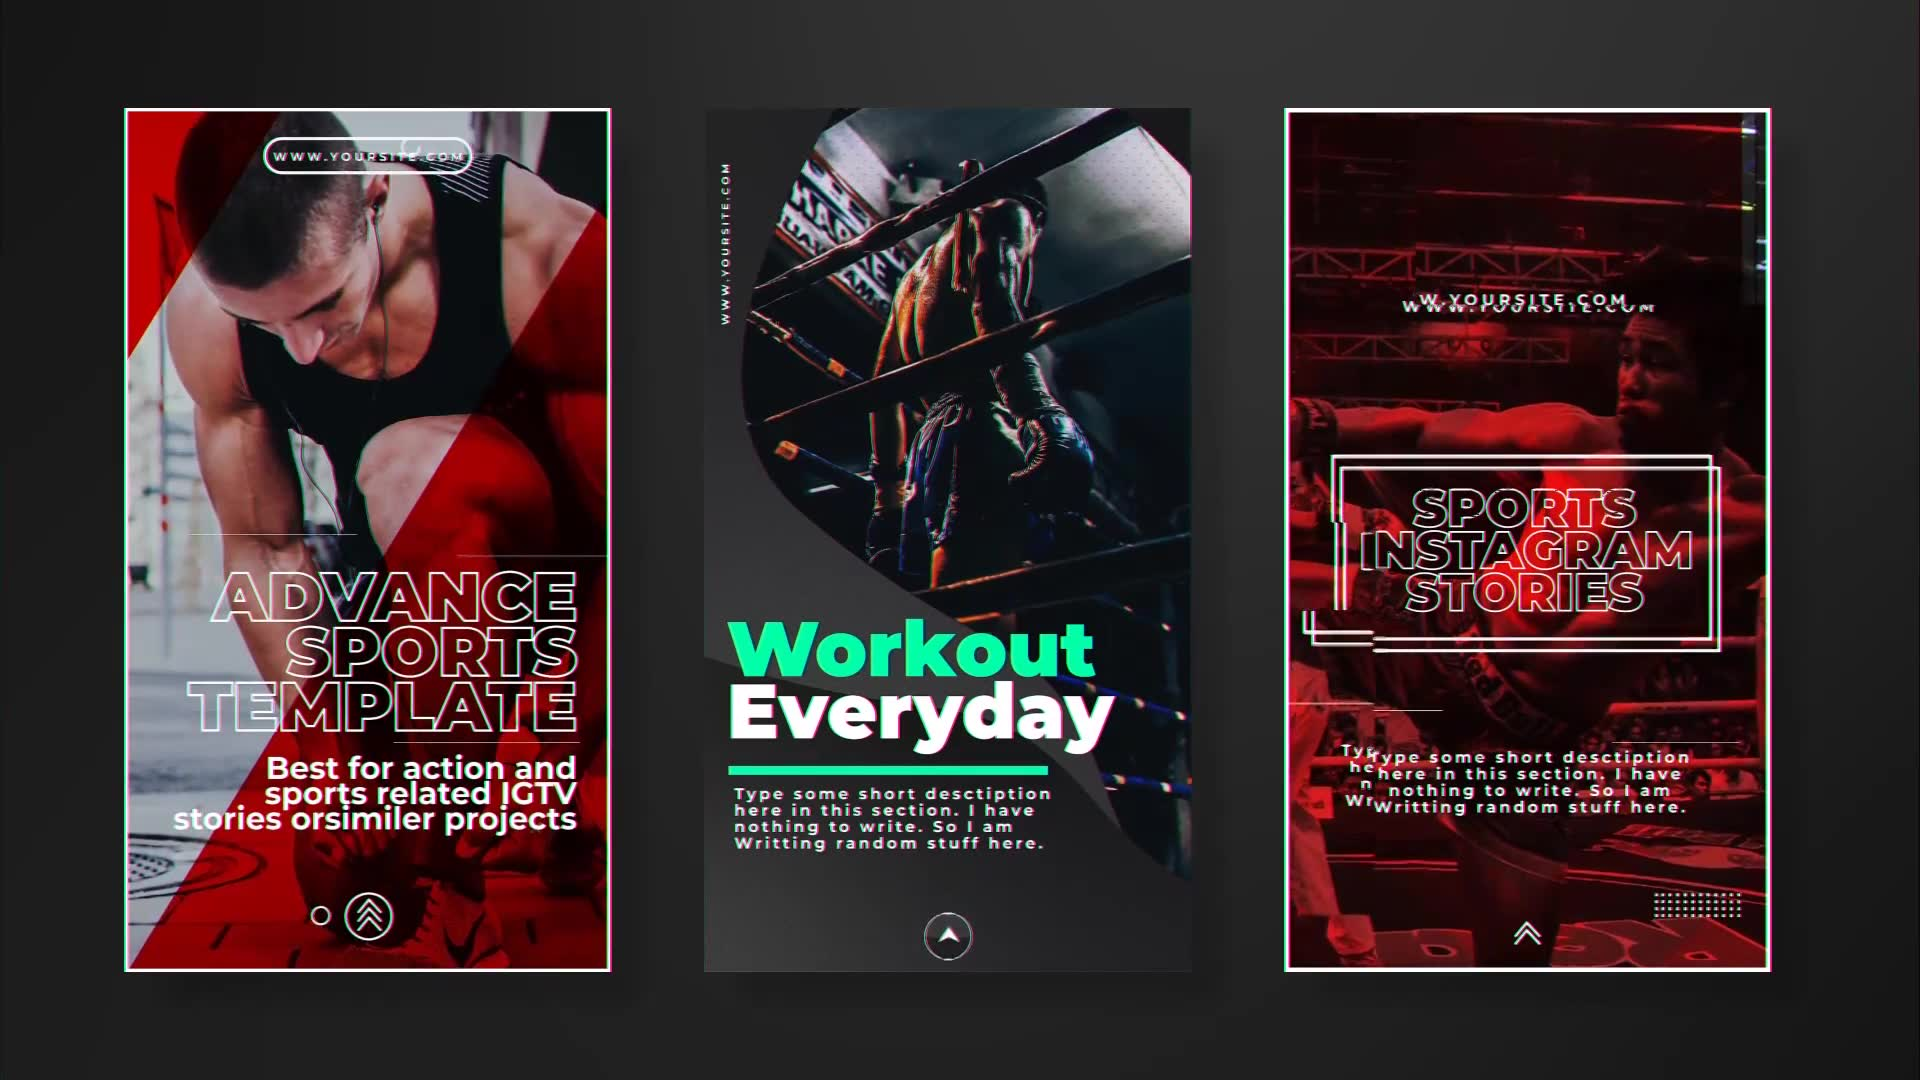 Sports Instagram Stories - Download Videohive 23100349